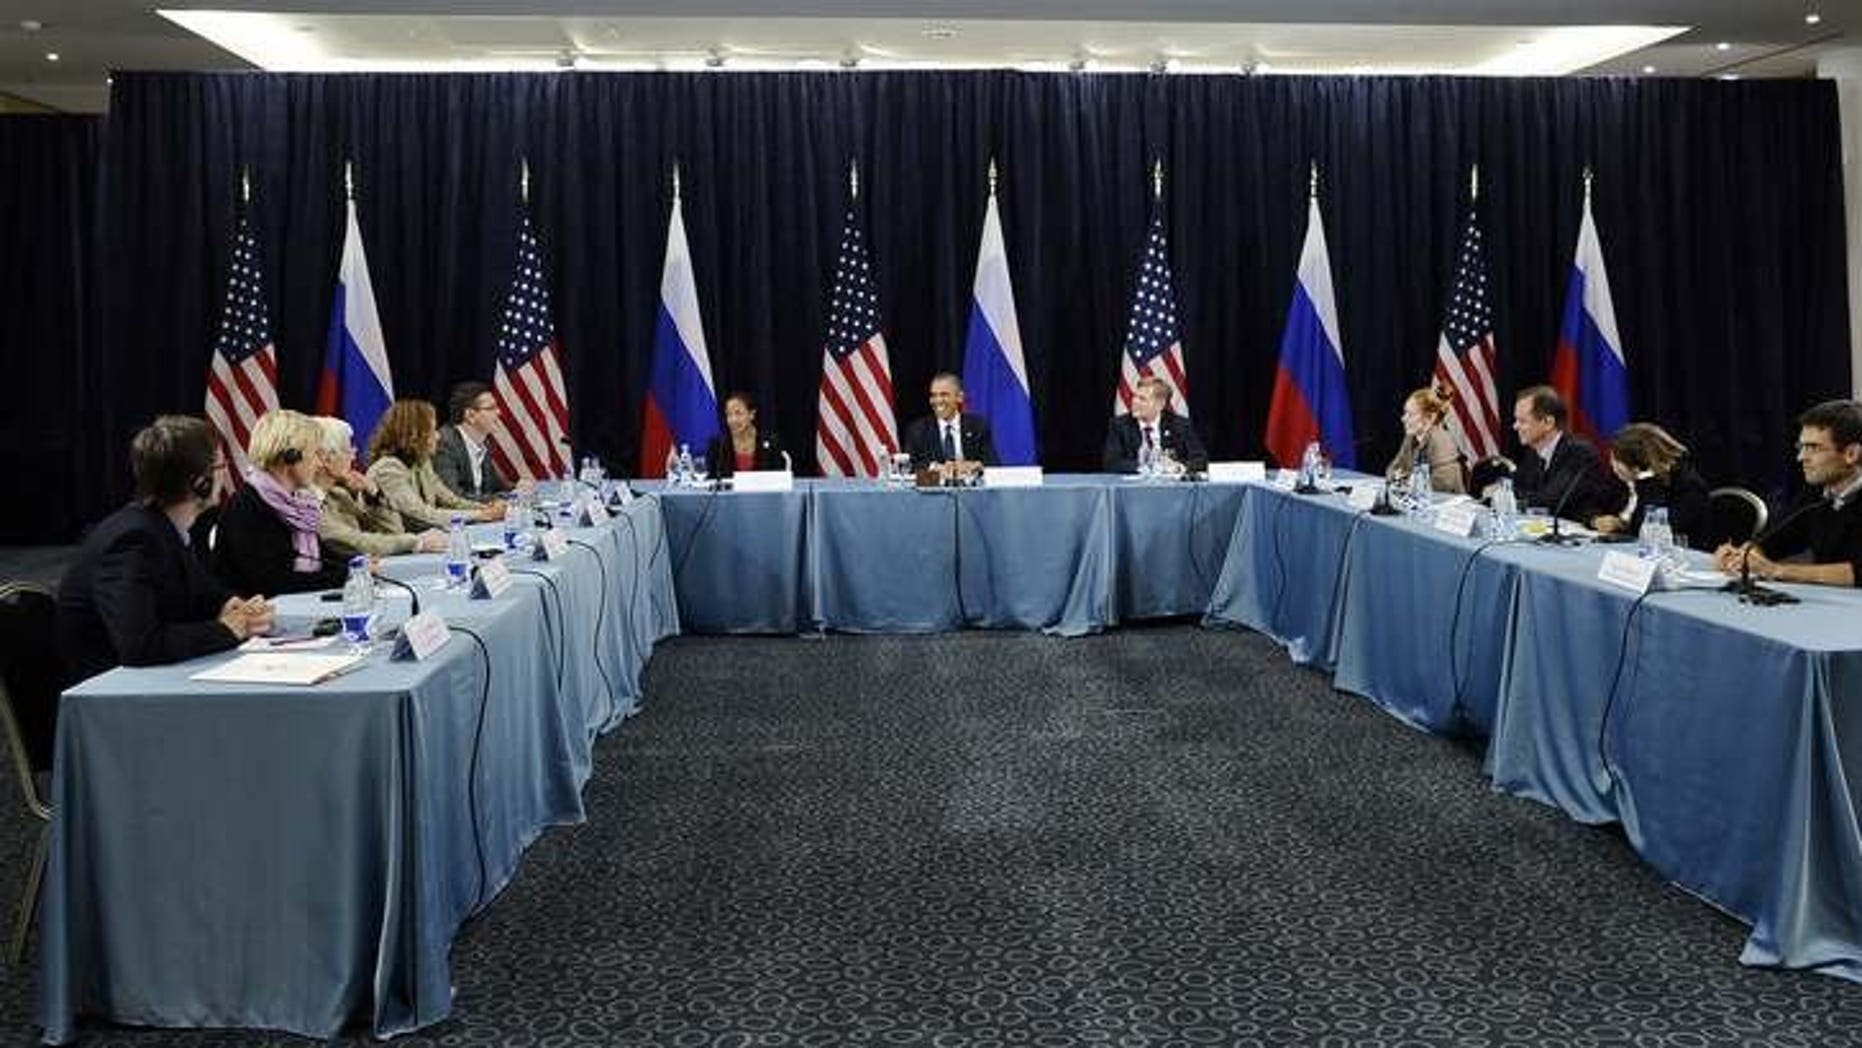 US President Barack Obama (C) holds a Civil Society Roundtable with gay, lesbian, transexual right activists at the Crowne Plaza Hotel in Saint Petersburg on September 6, 2013.